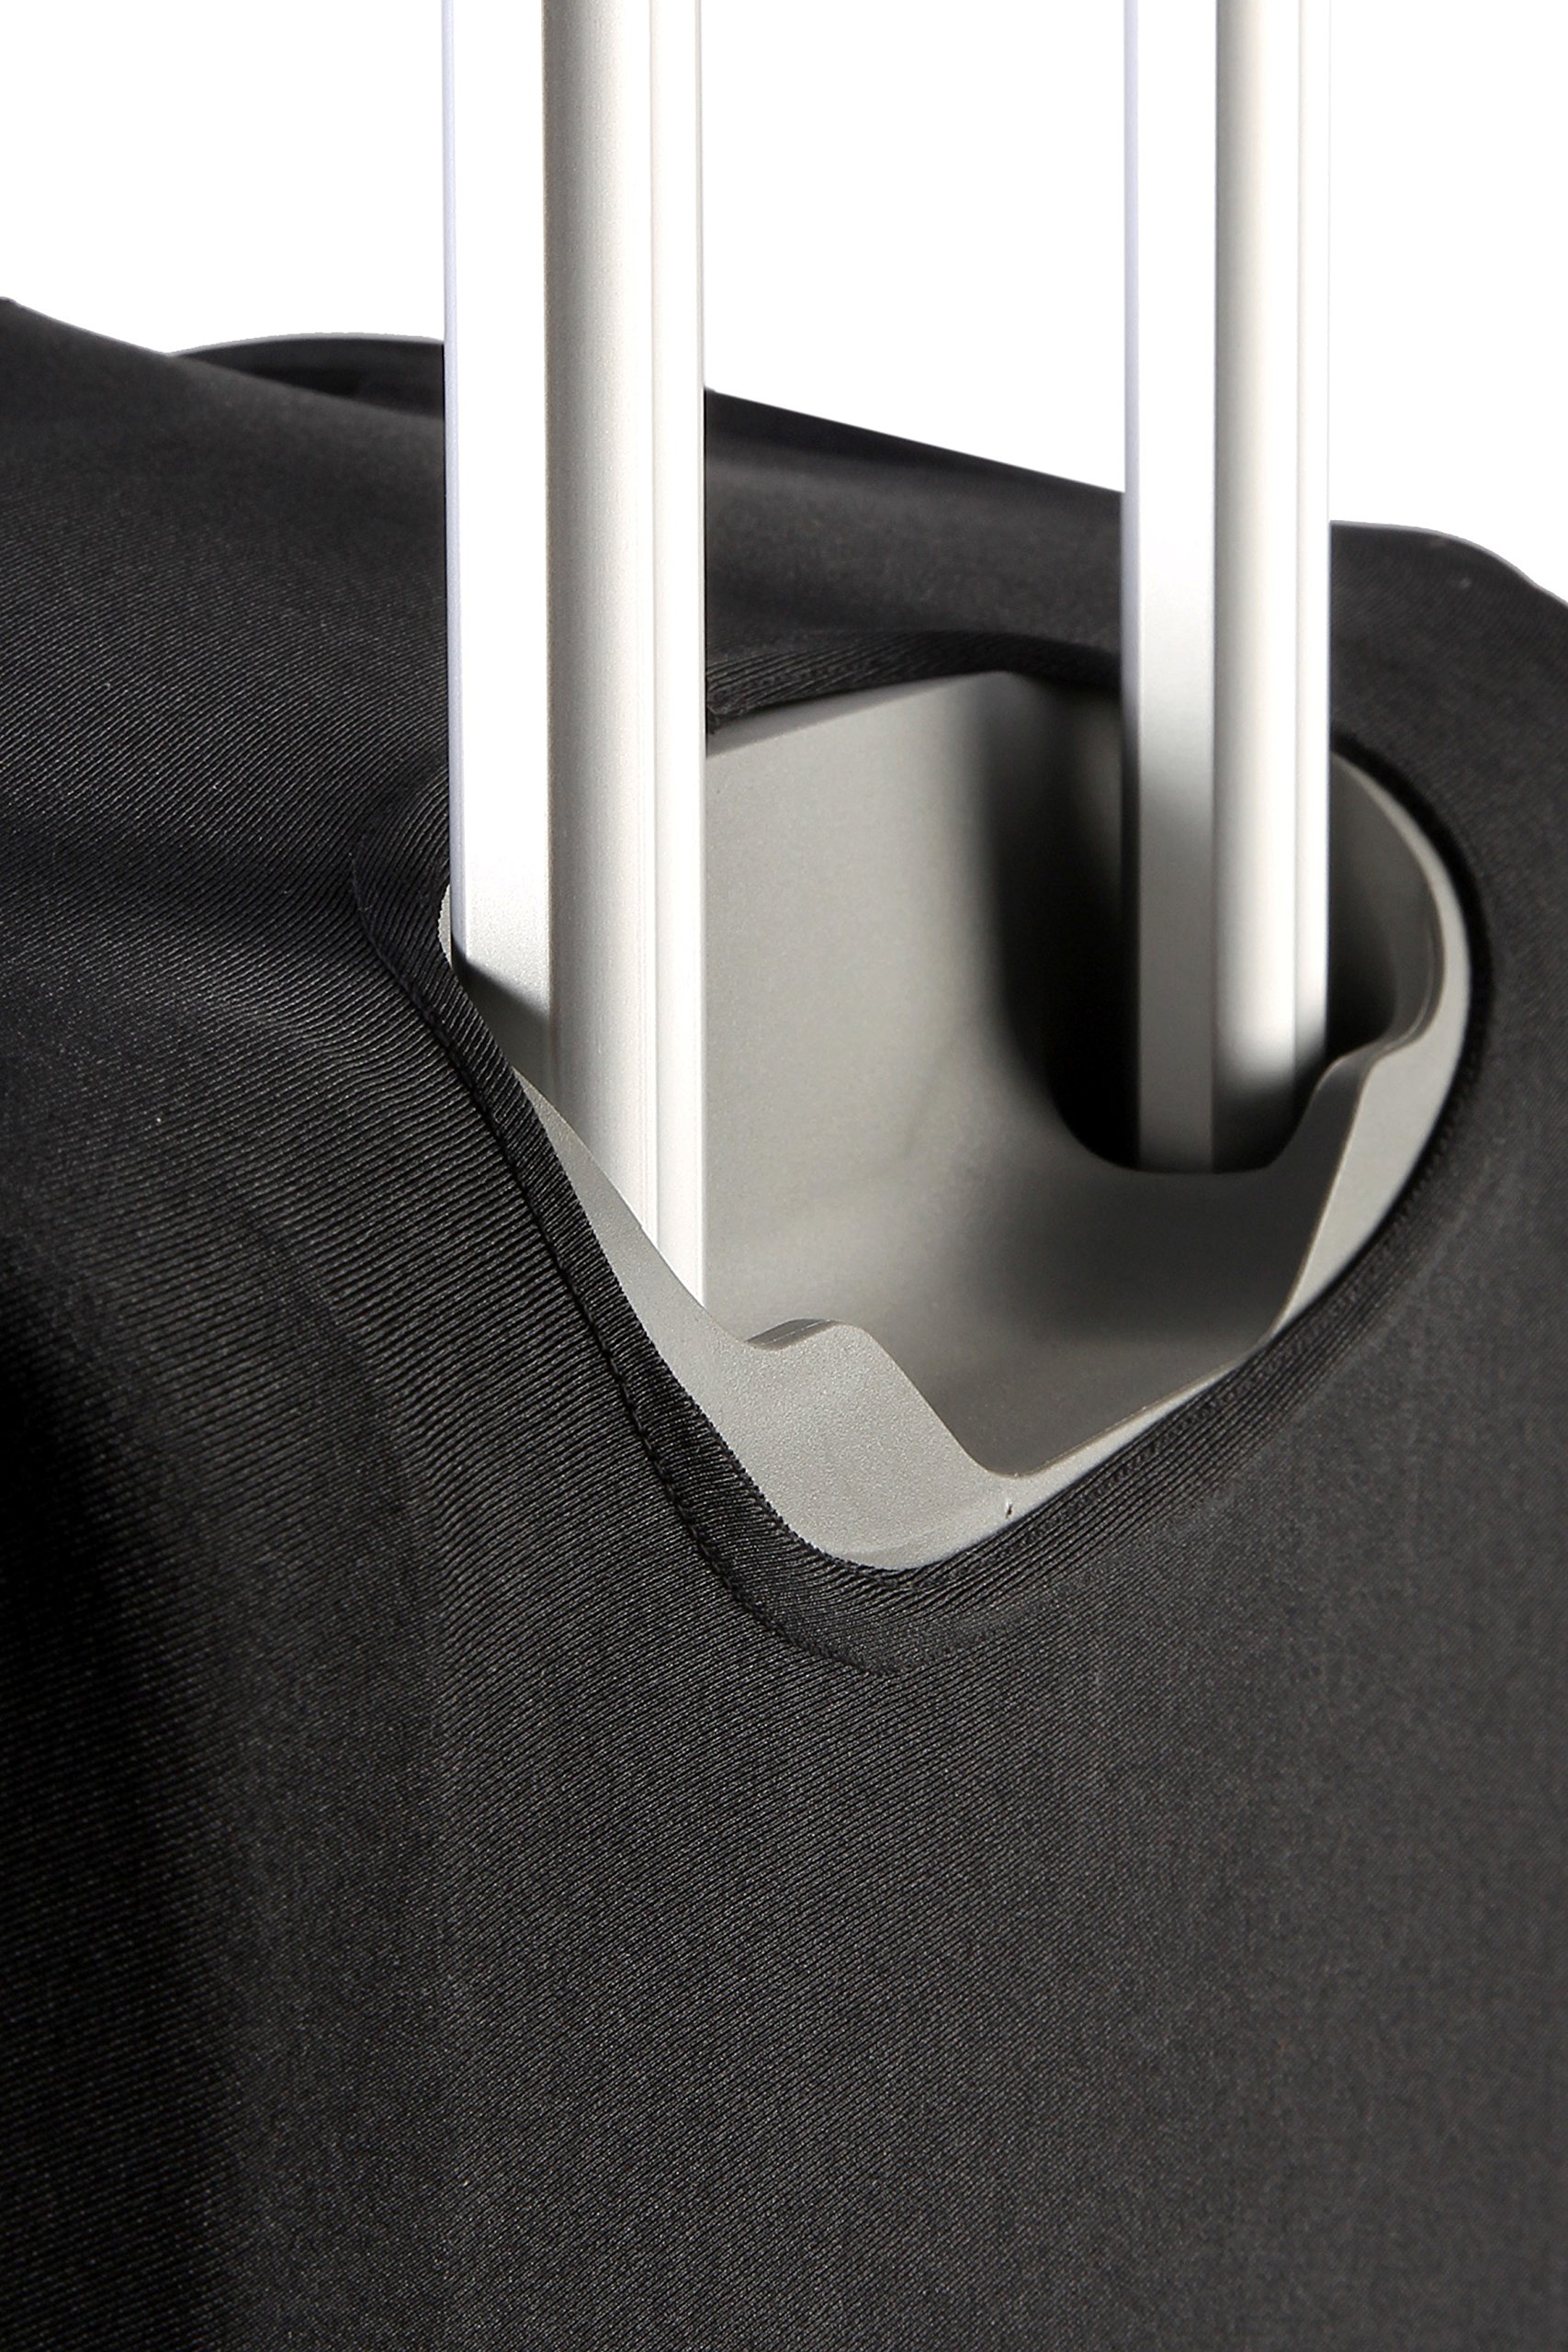 Travel Luggage Protective Cover - Stretchable Suitcase Protector Case, Black, 26 Inches by Juvale (Image #8)